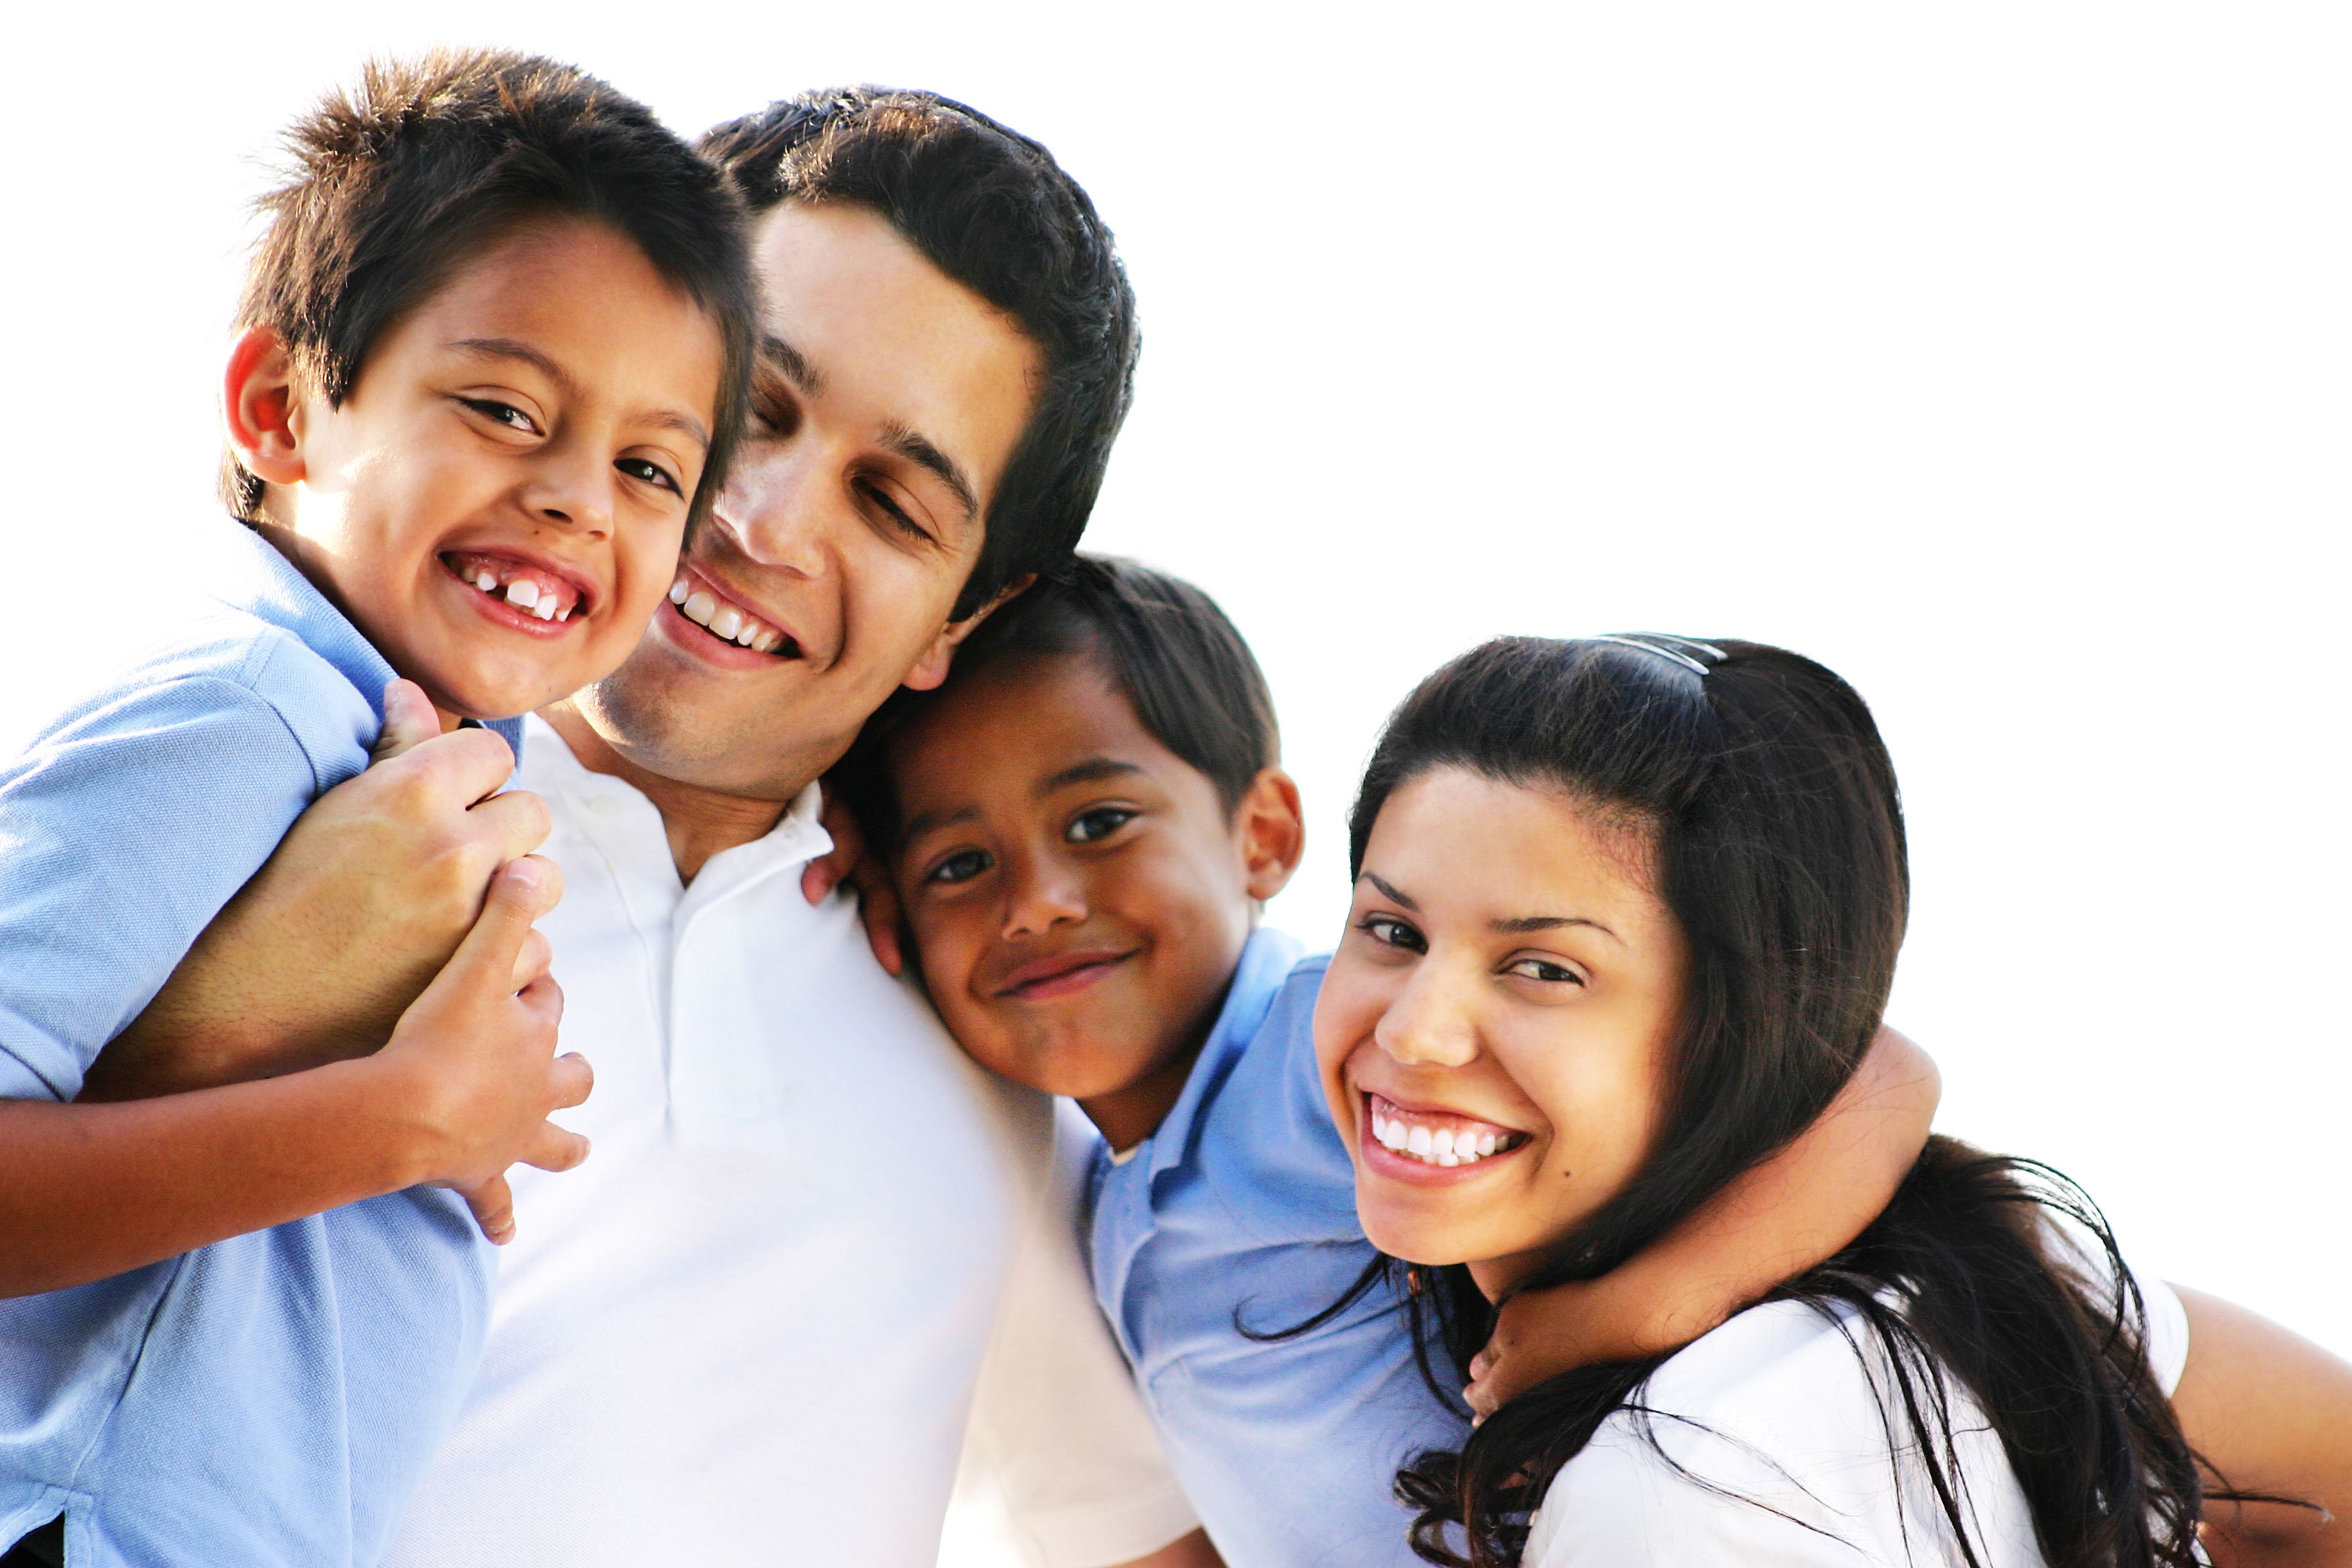 January is Positive Parenting Awareness Month